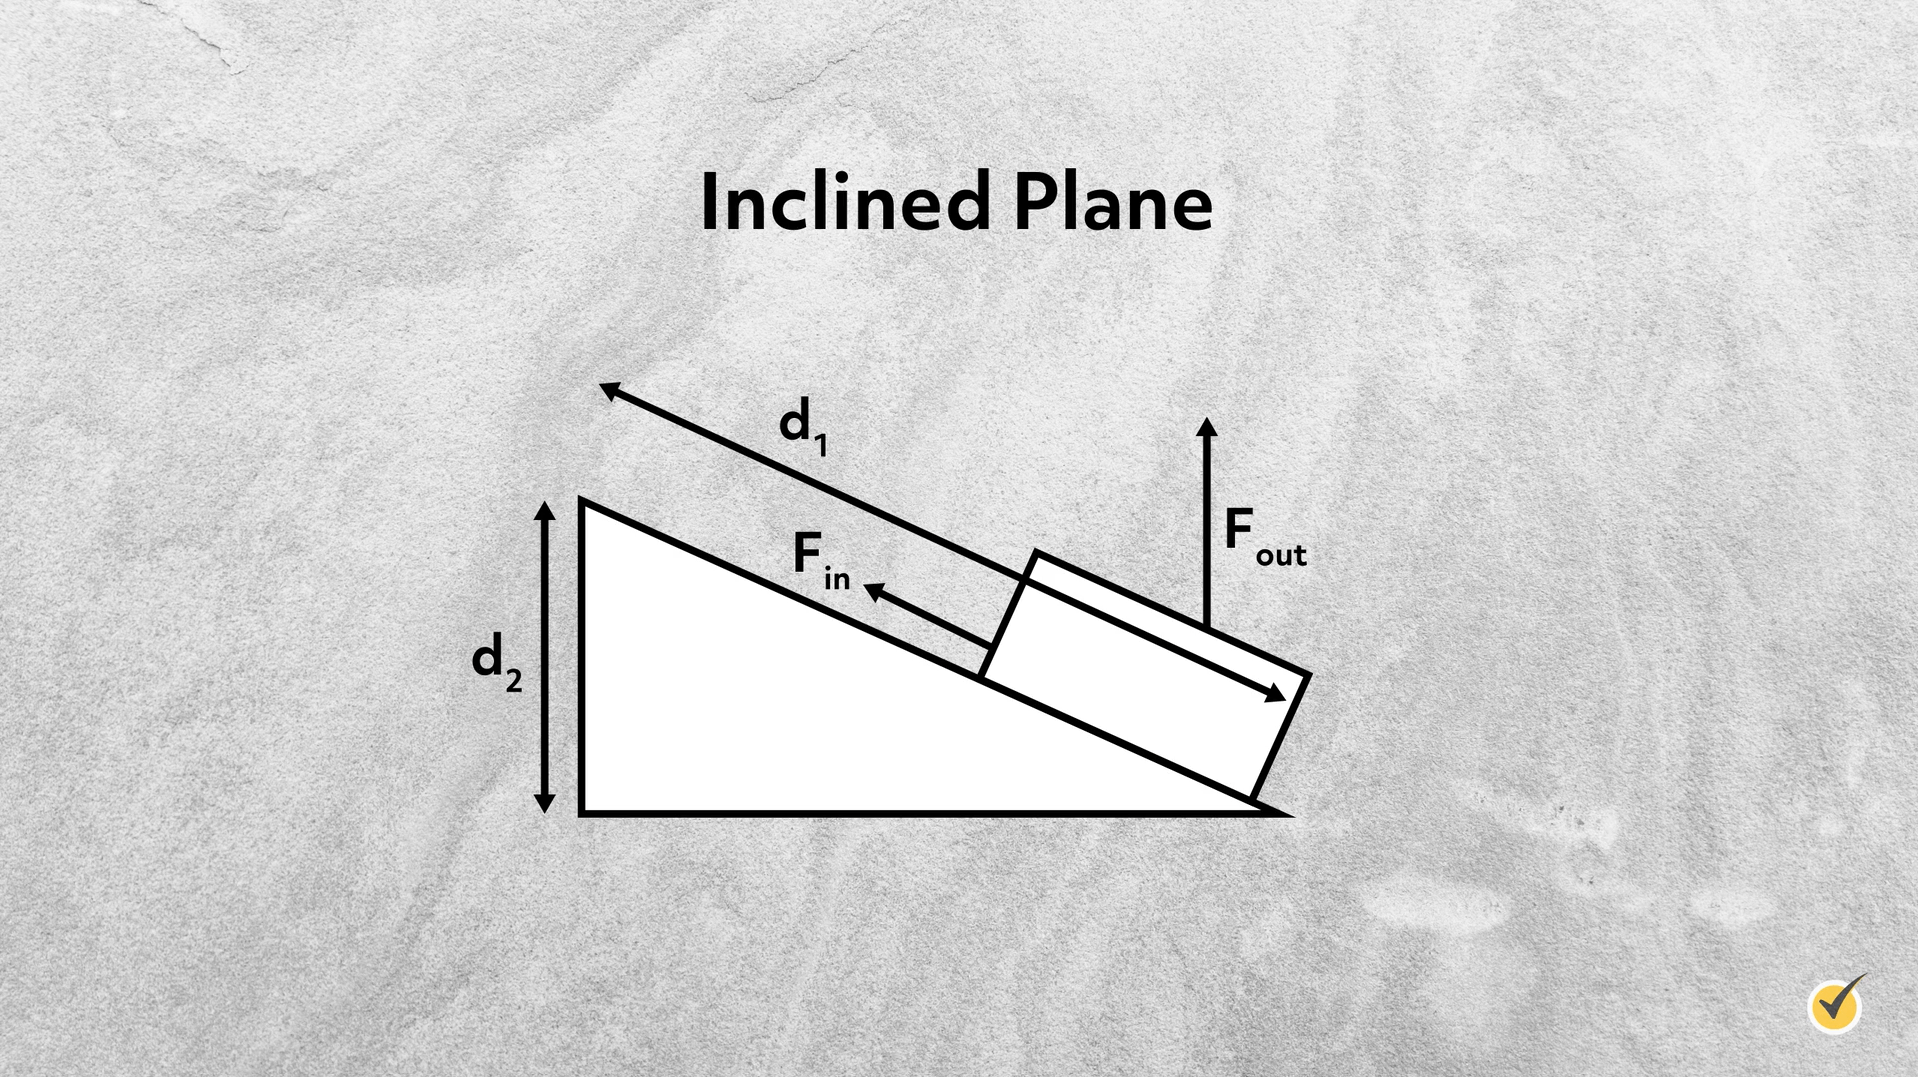 Image of an inclined plane.